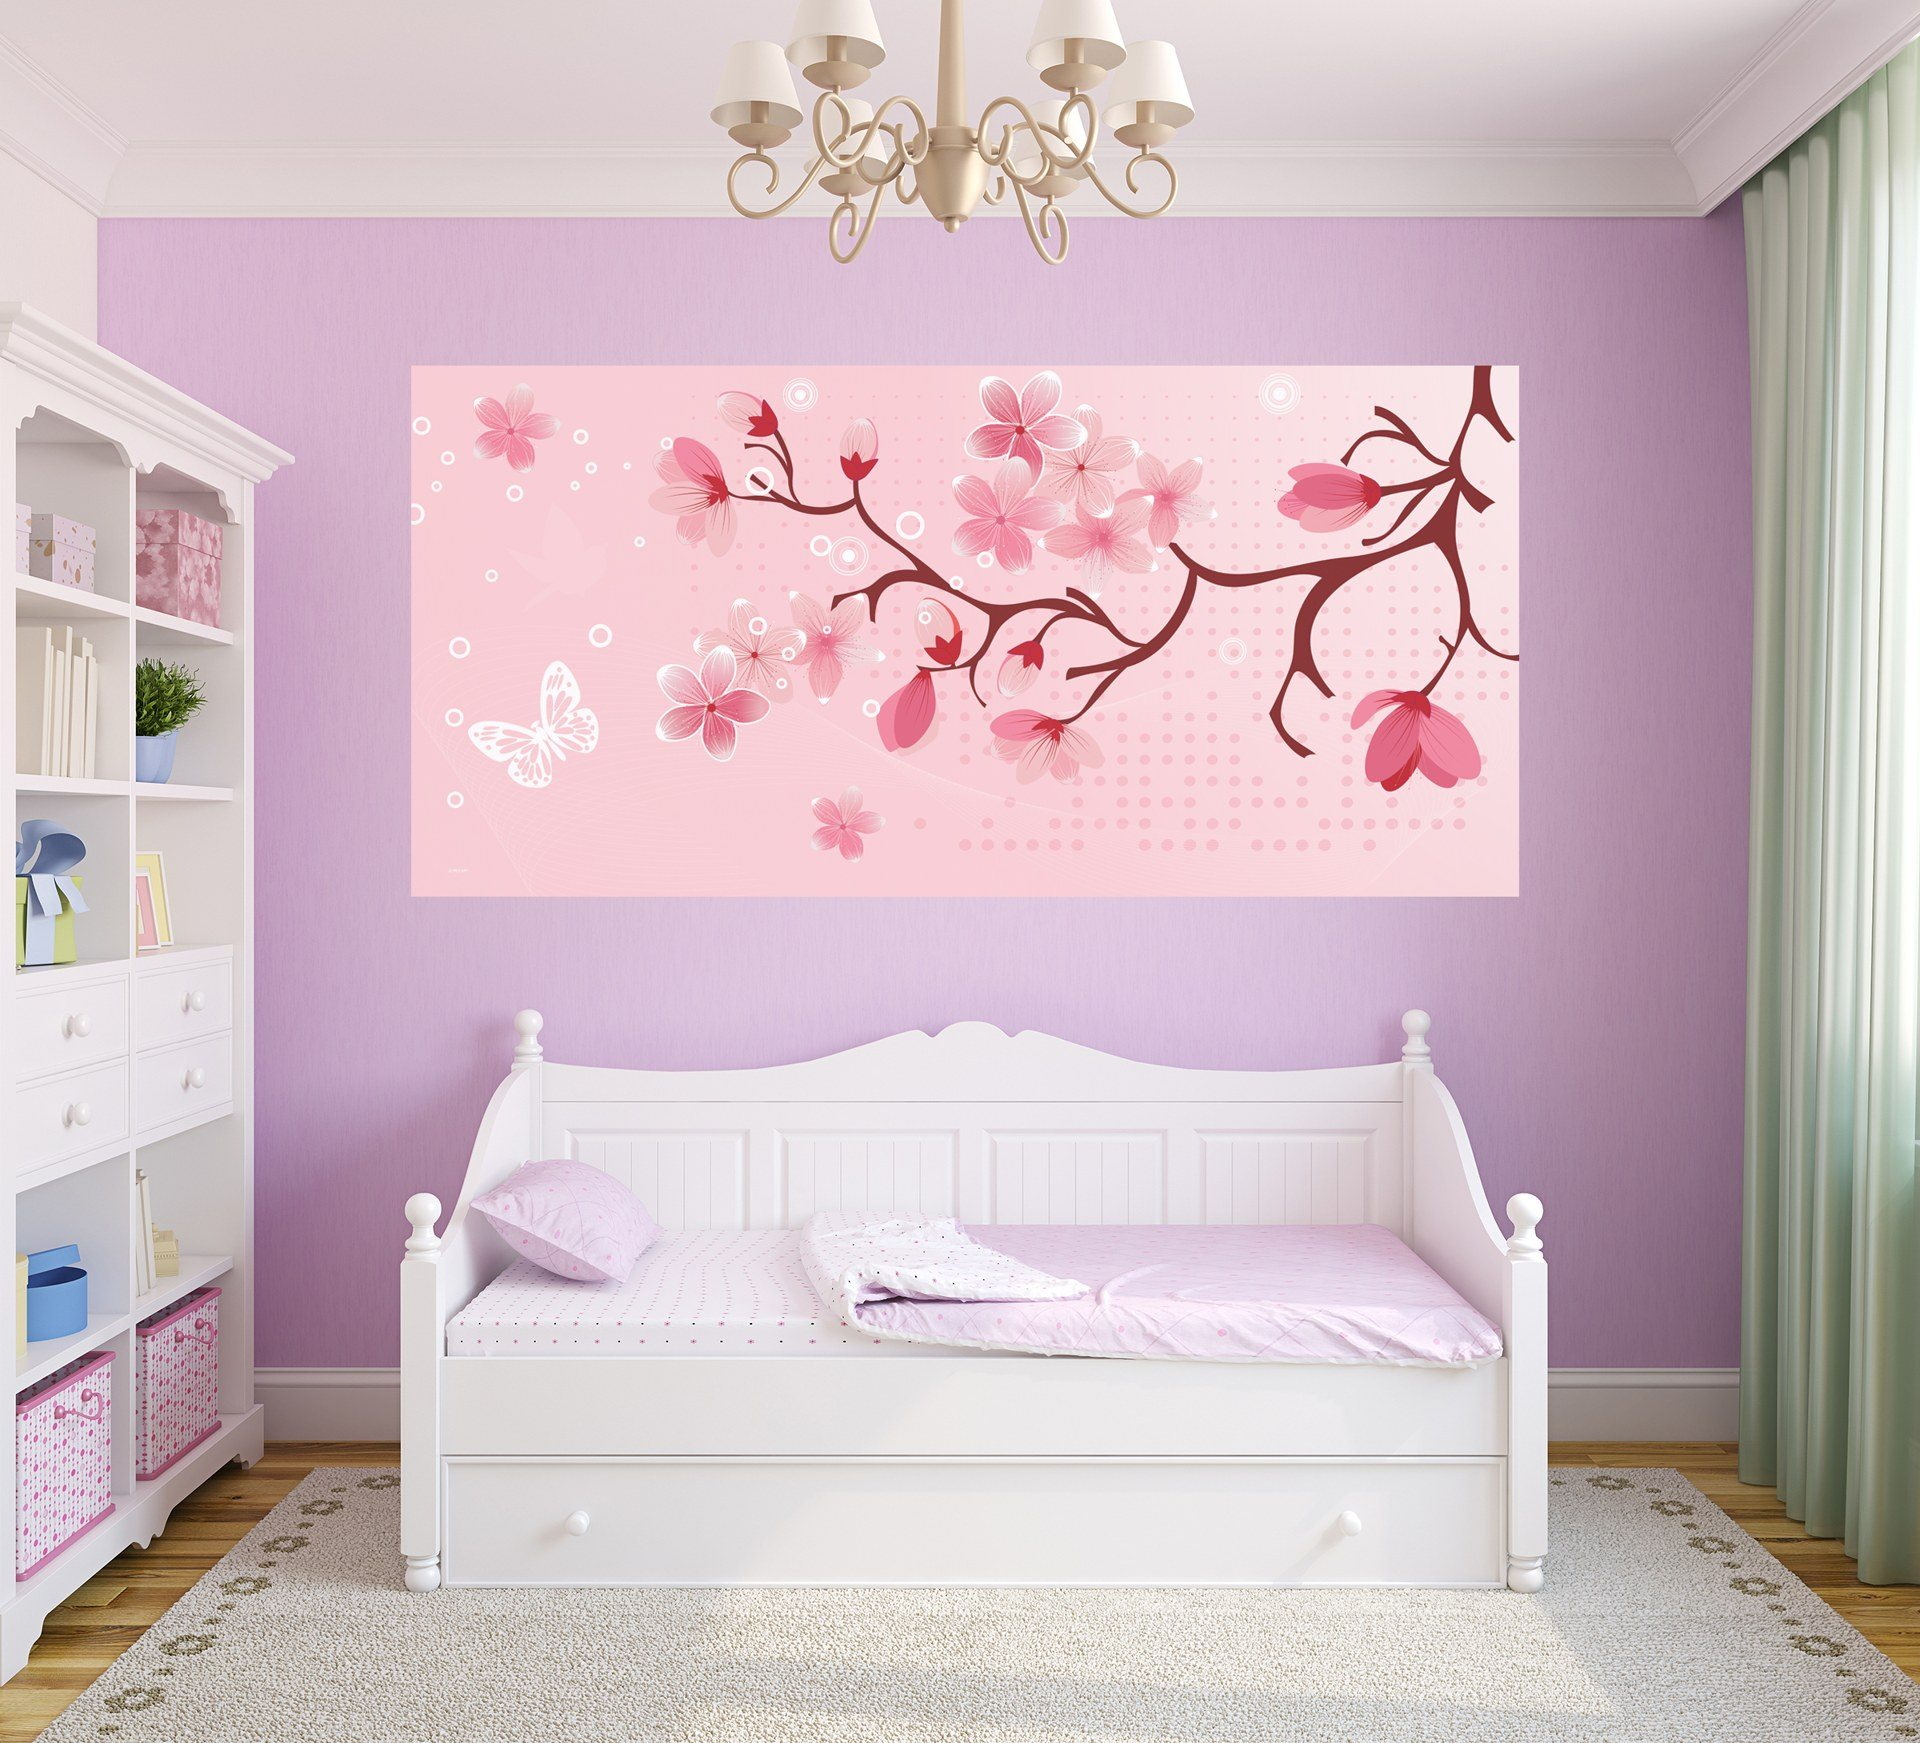 Cherry blossom half wall murals jasabyn for Cherry blossom mural on walls